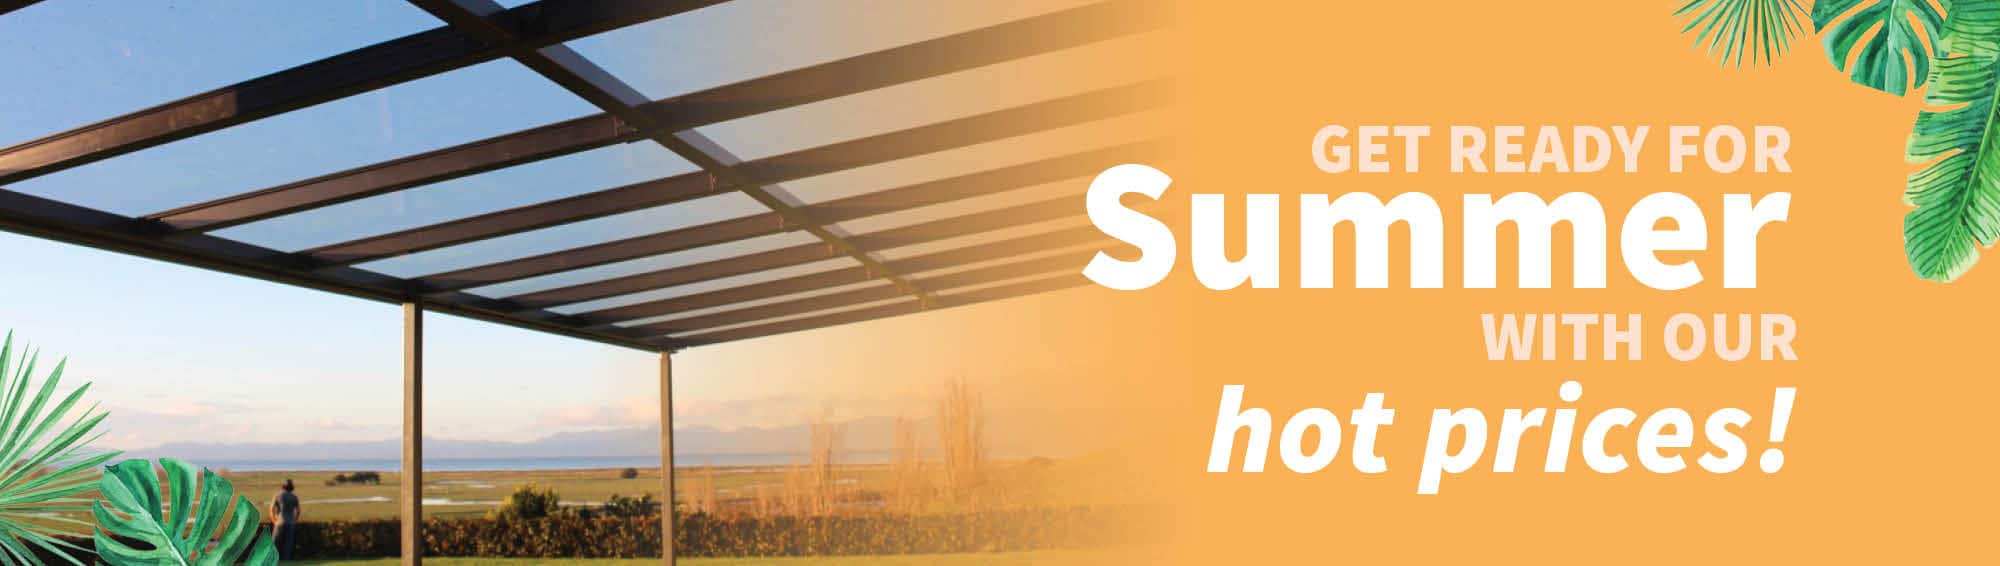 Get ready for summer with Supreme Plastic Roofing